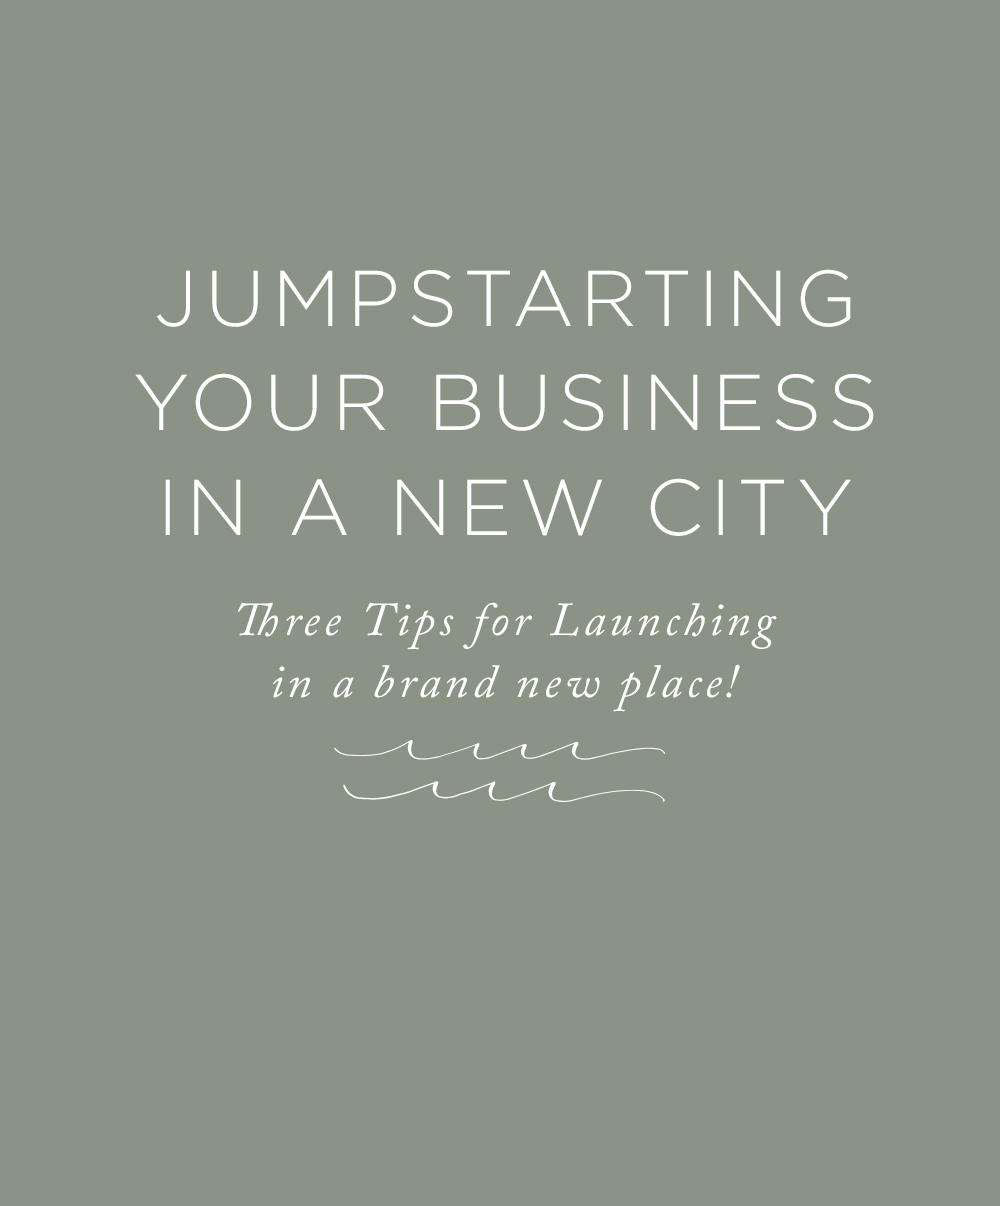 3 Tips For Jumpstarting Your Photography Business In A New City